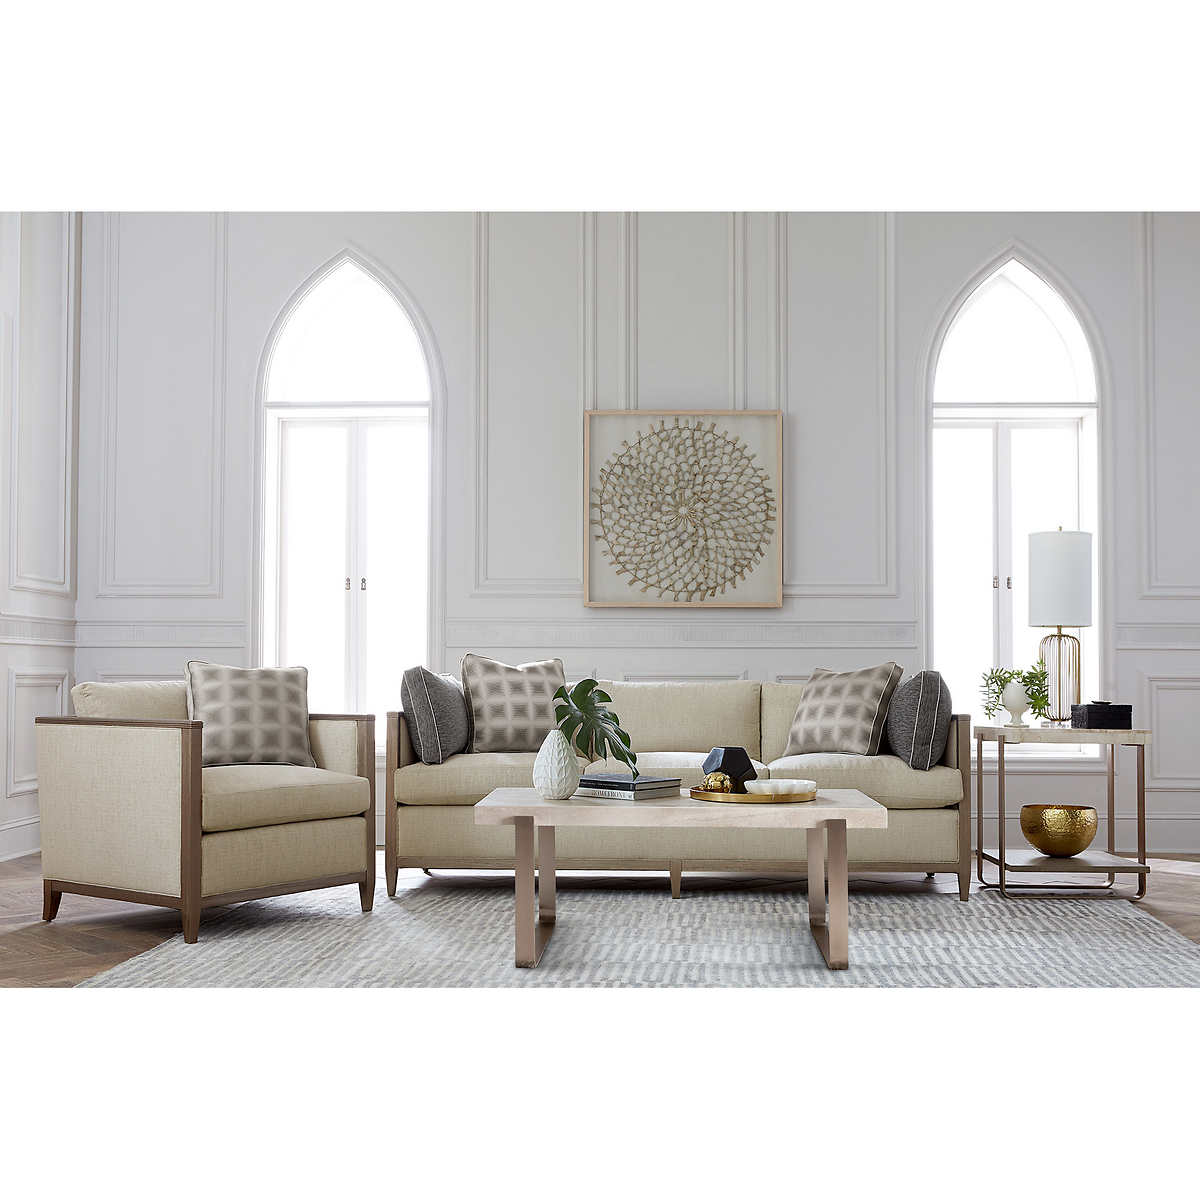 Fabric Sofas   Sectionals   Costco Carlson 4 piece Fabric Living Room Set. Costco Living Room. Home Design Ideas